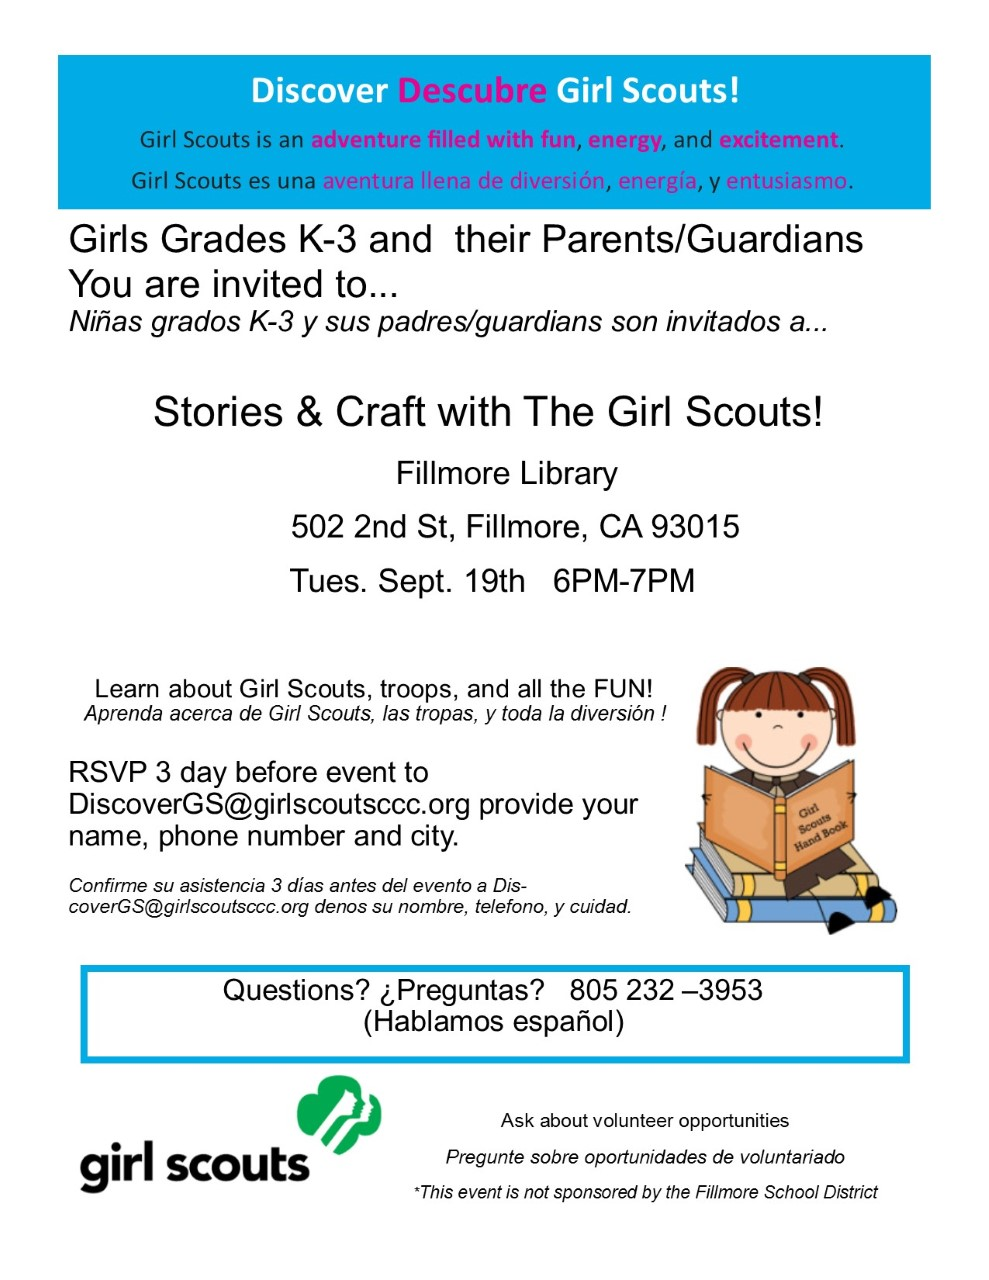 Tues Sept 19, 2017 STORY TIME and Craft Library Recruitment Event.jpg